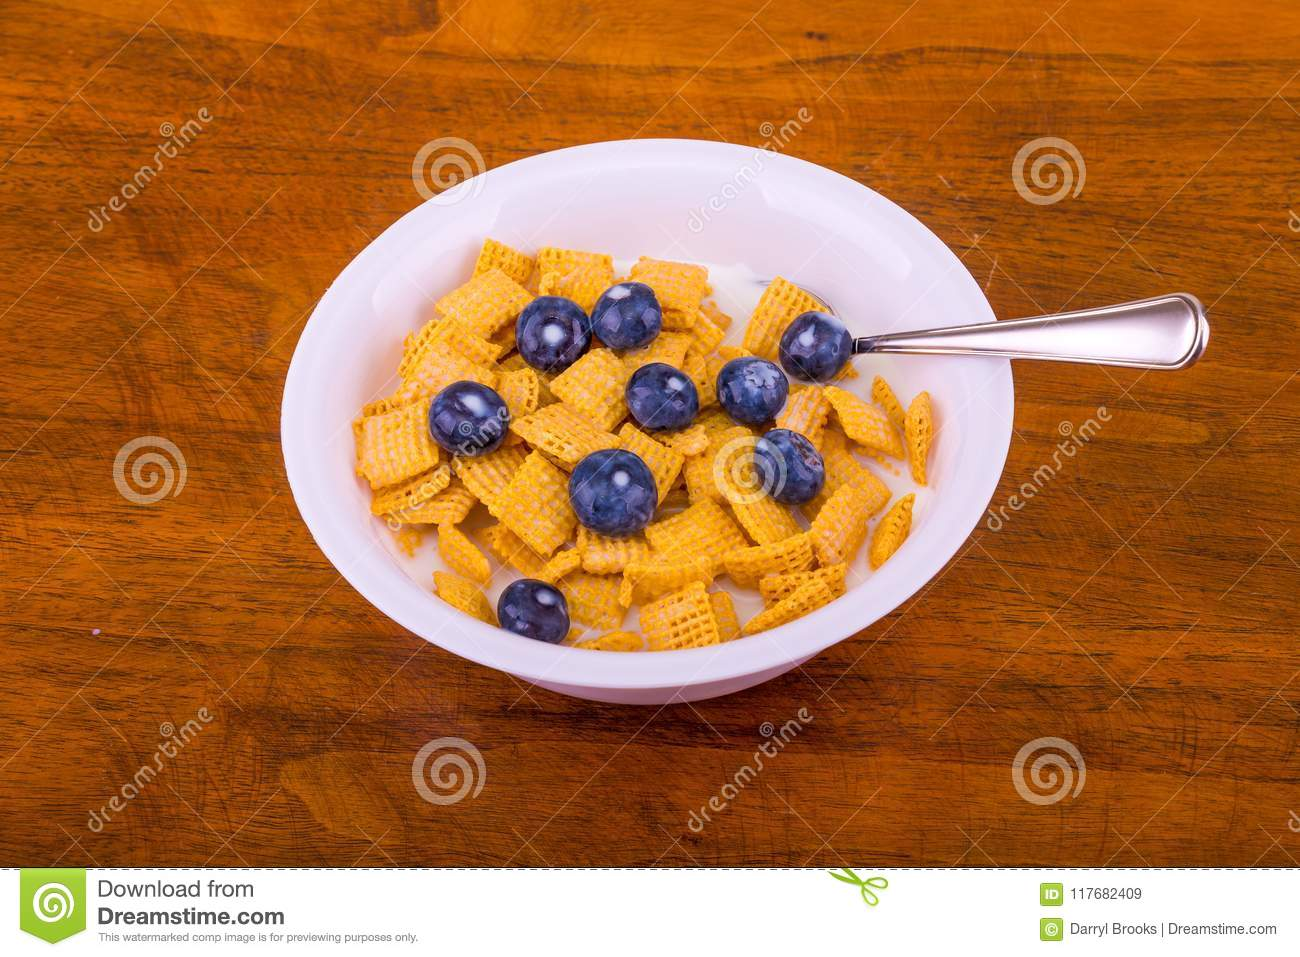 Crunchy Corn Cereal with Blueberries and Milk